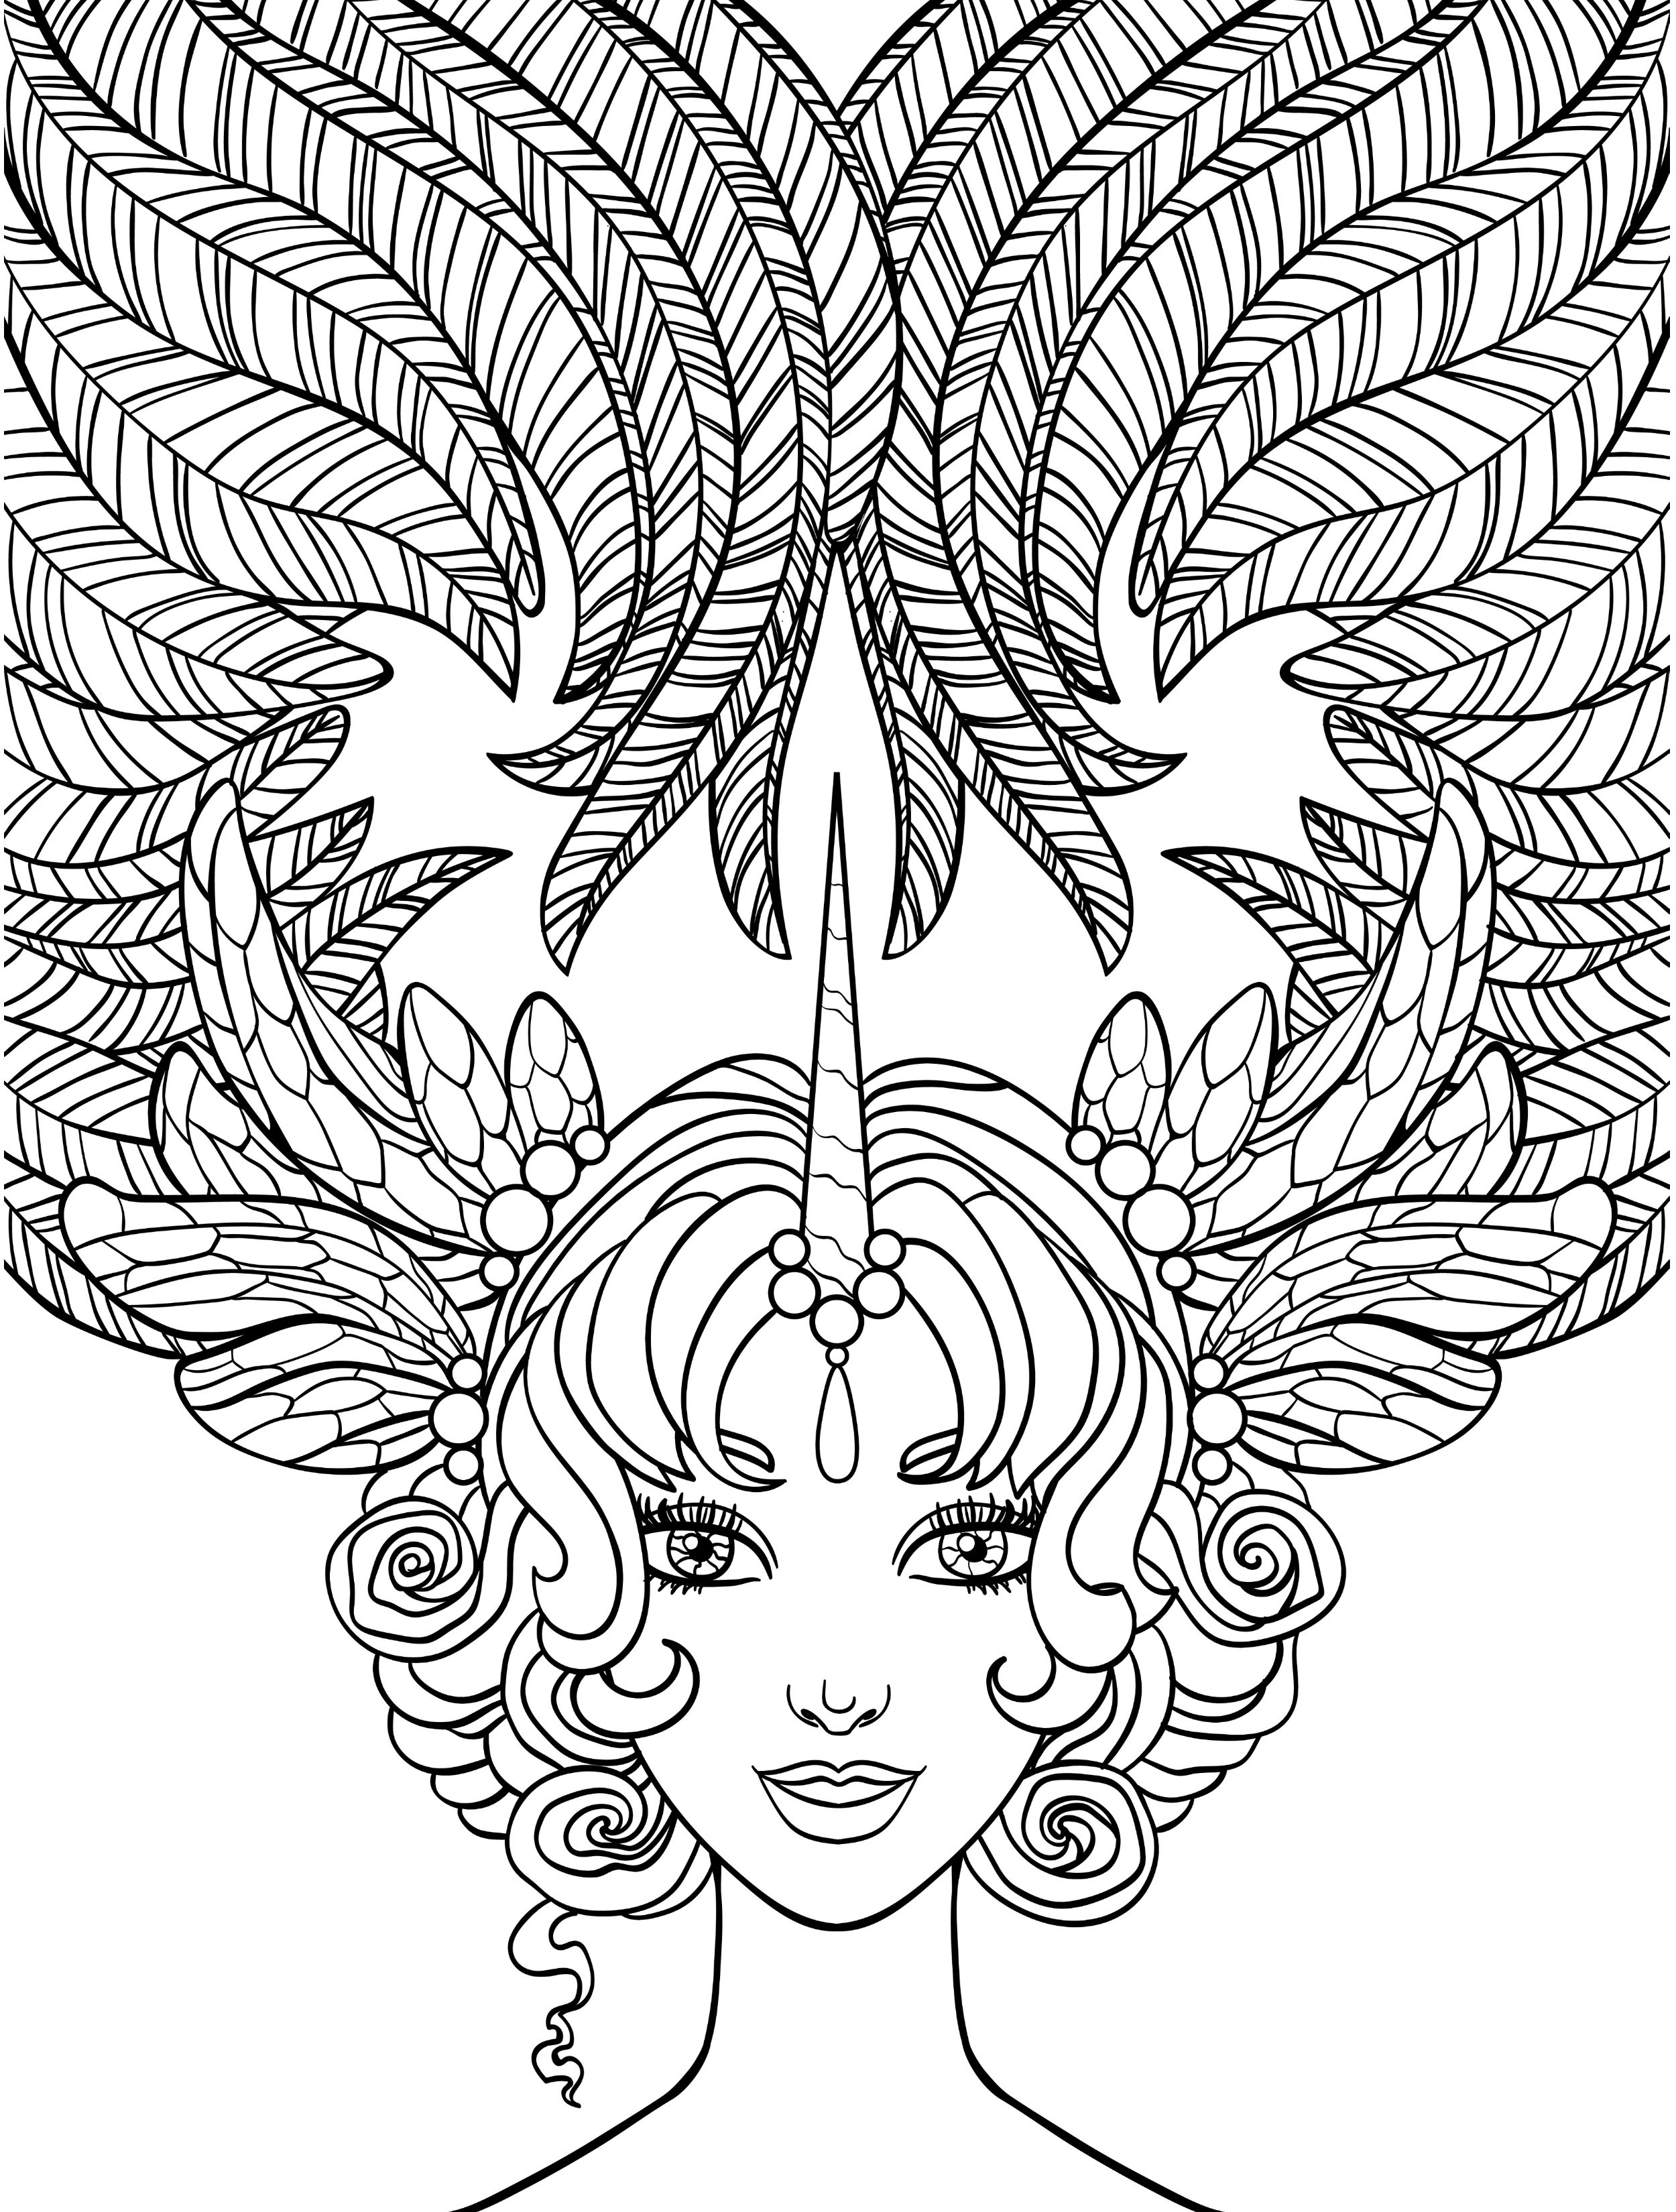 2500x3300 Value Conflict Resolution Coloring Pages Crazy Hair Adult